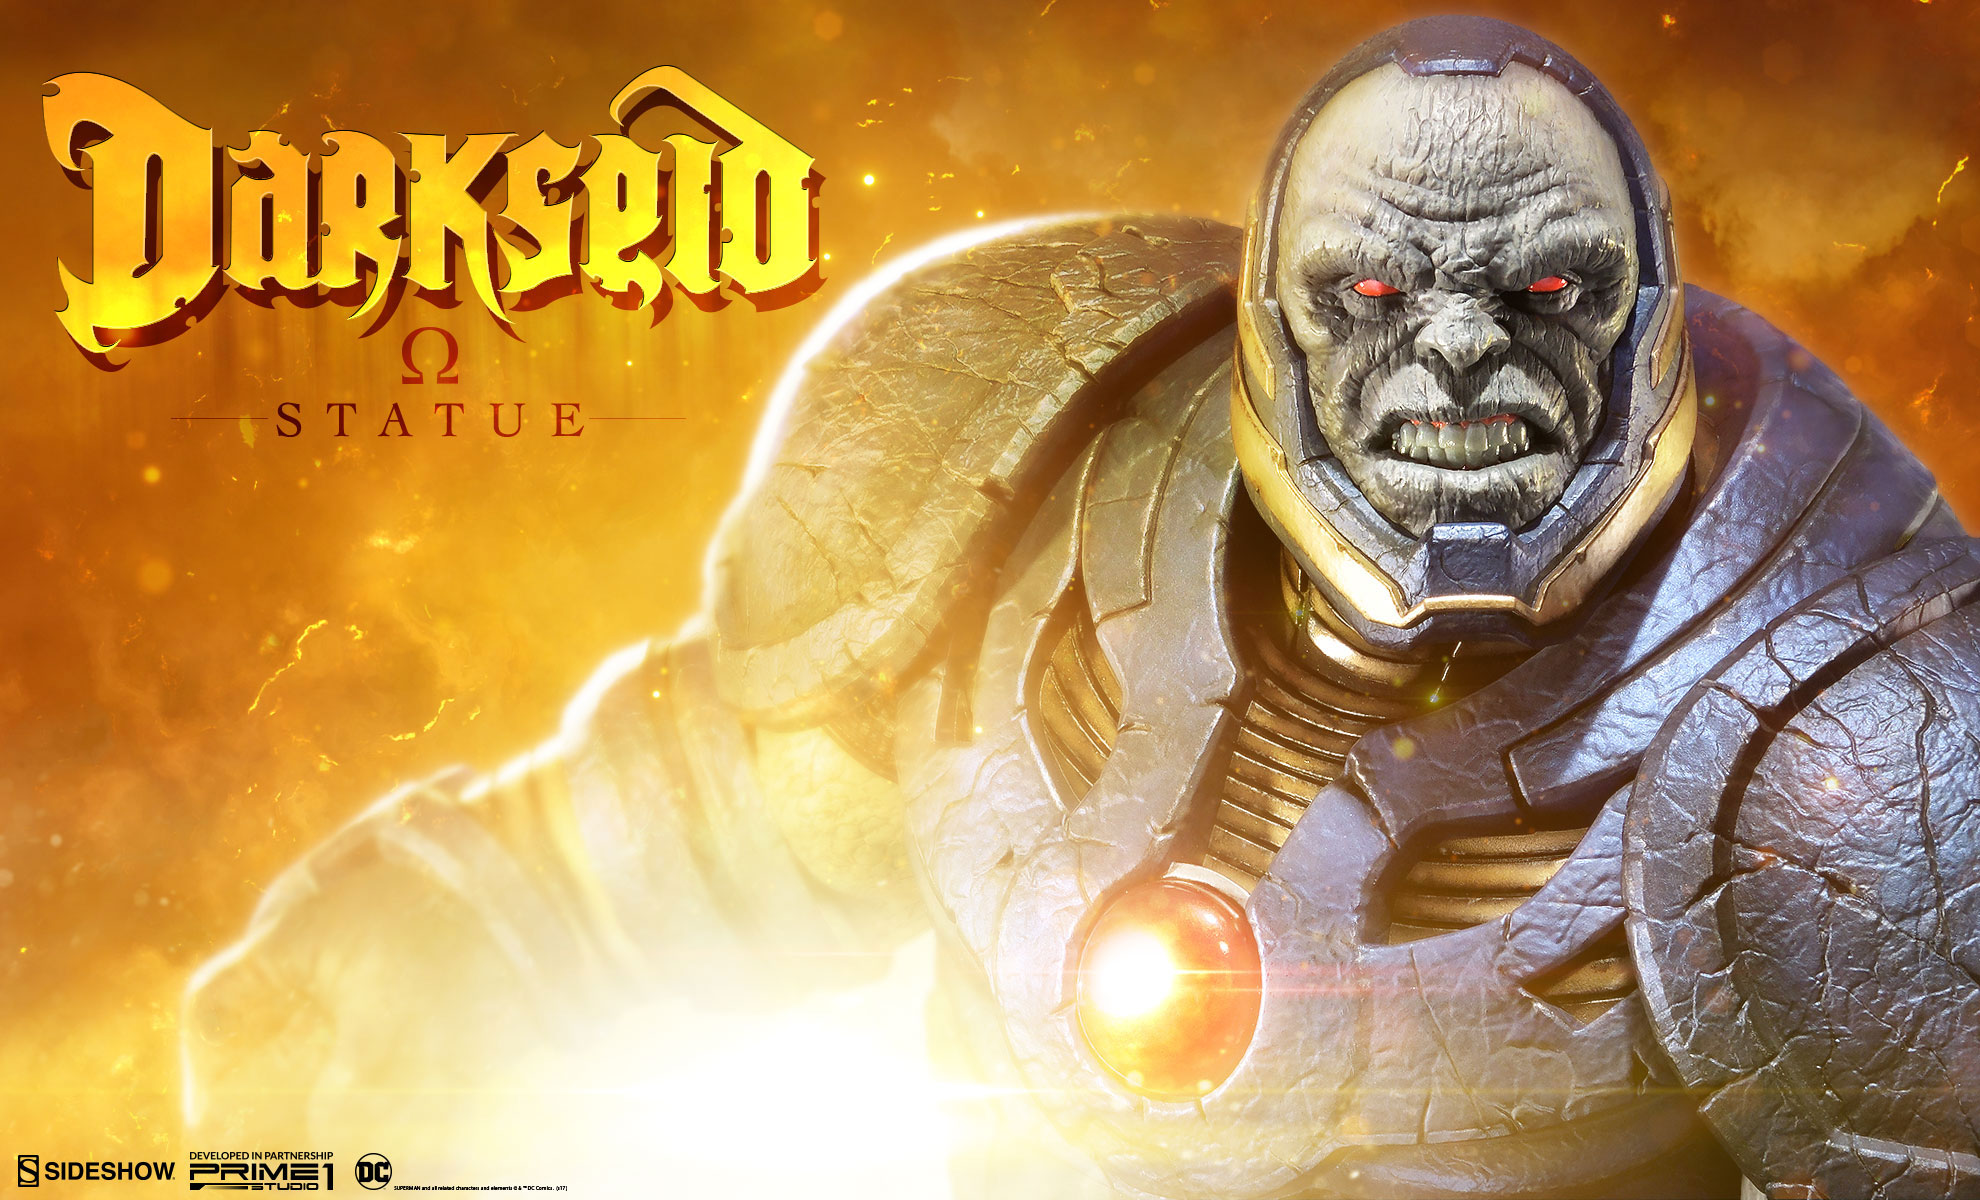 darkseid-statue-sideshow-prime-1-studio-preview